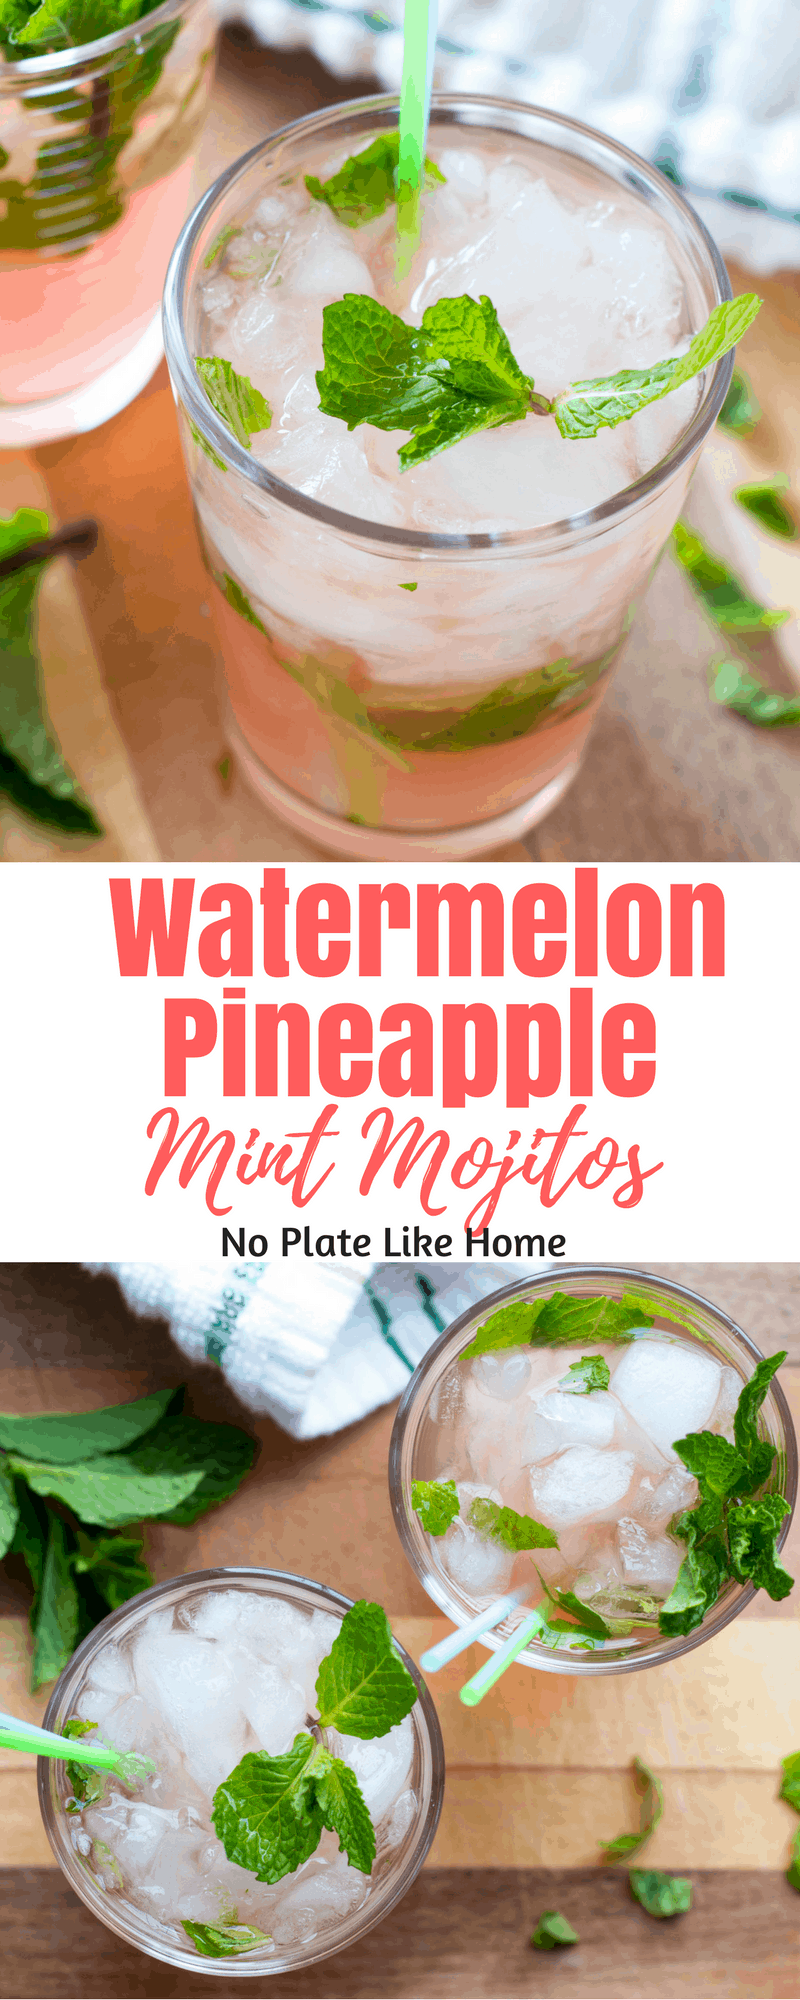 Watermelon Pineapple Mint Mojitos are refreshing summer cocktails to drink while lying next to the pool or on the beach! Easy-to-make!